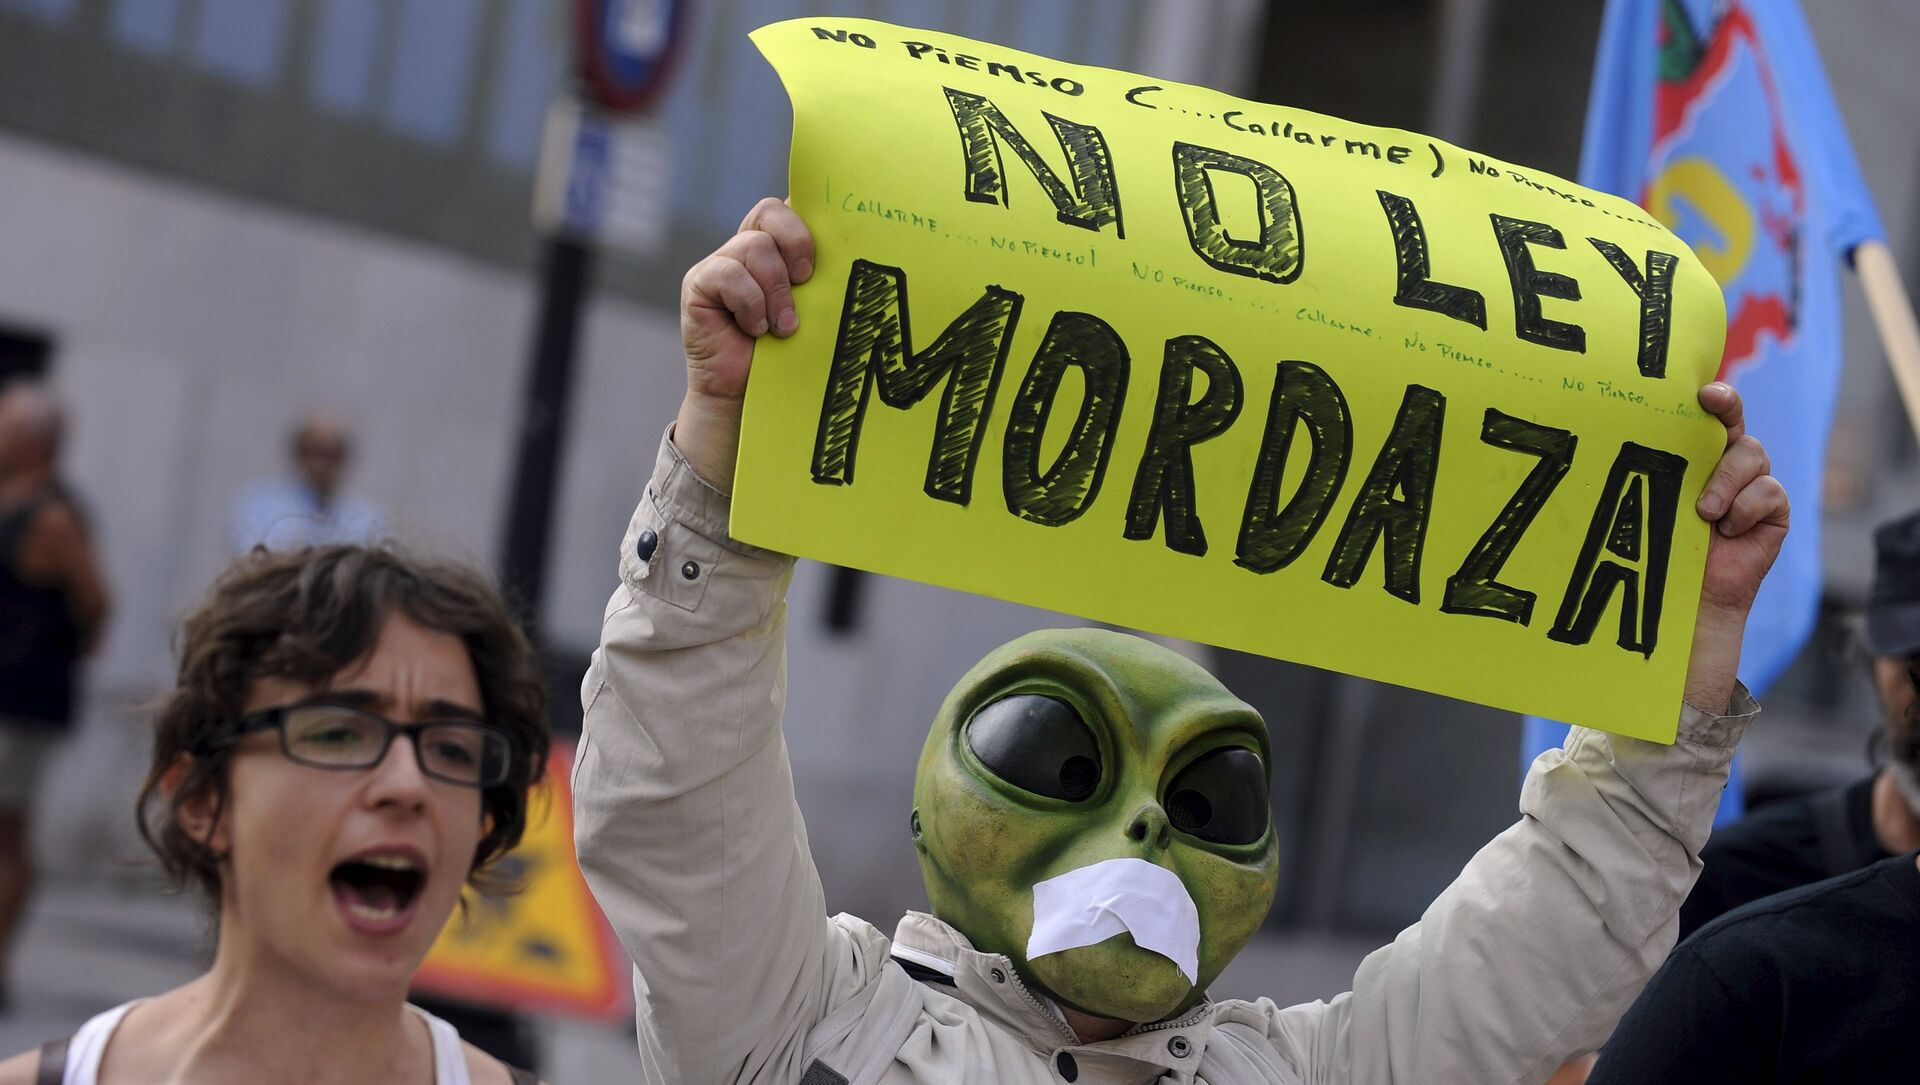 A man wearing a mask with a tape over the mouth holds up a sign during a protest against the Spanish government's new security law in Gijon, northern Spain, June 30, 2015. - Sputnik Mundo, 1920, 24.05.2016